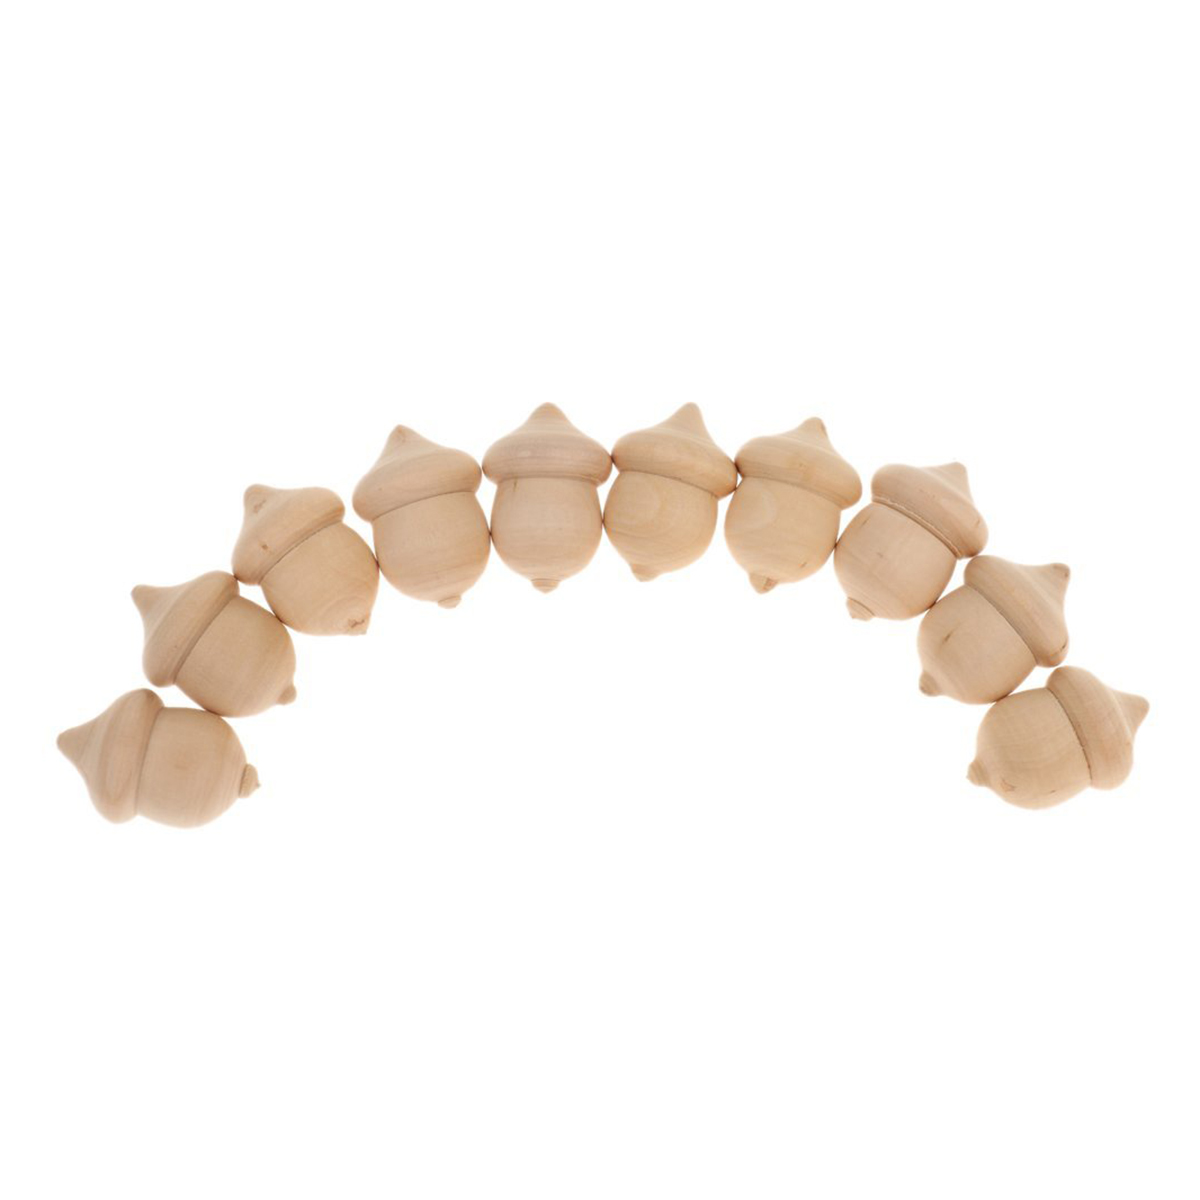 Us 302 10pcs Wooden Acorn Unfinished Wood Diy Supplies Painting Craft Wedding Party Ornaments Theme Activity Decorations In Wood Diy Crafts From